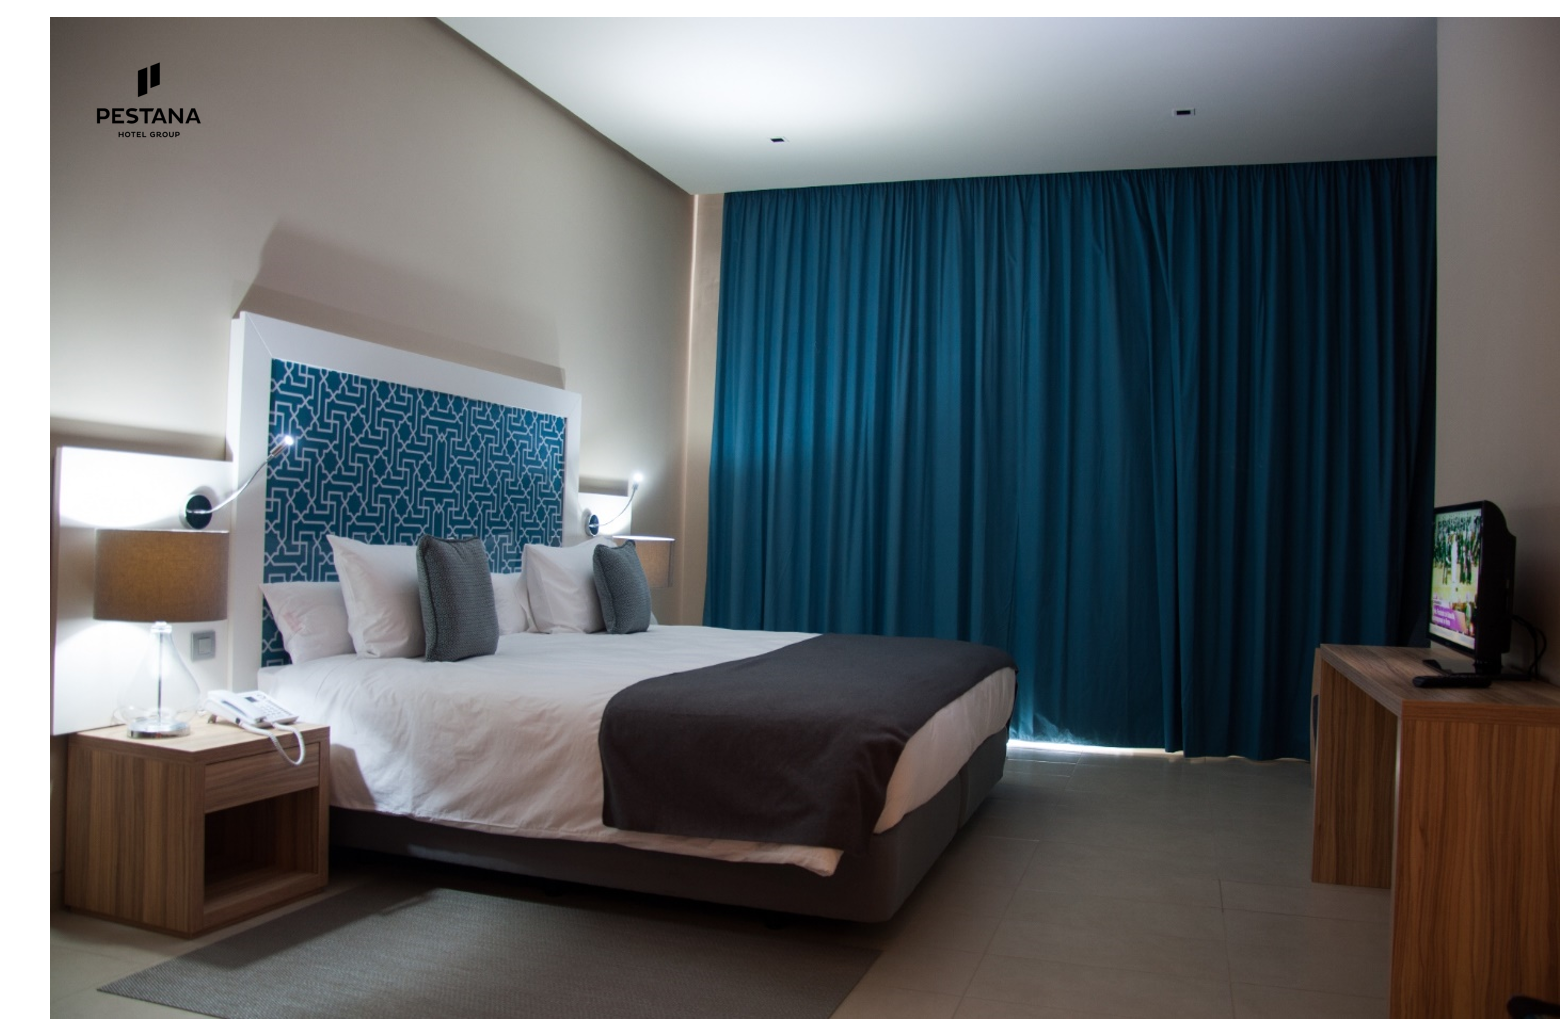 Simple But Elegant Bedroom  Pestana Casablanca Hotel  Bedroom Awesome Elegant Bedrooms Designs Inspiration Design